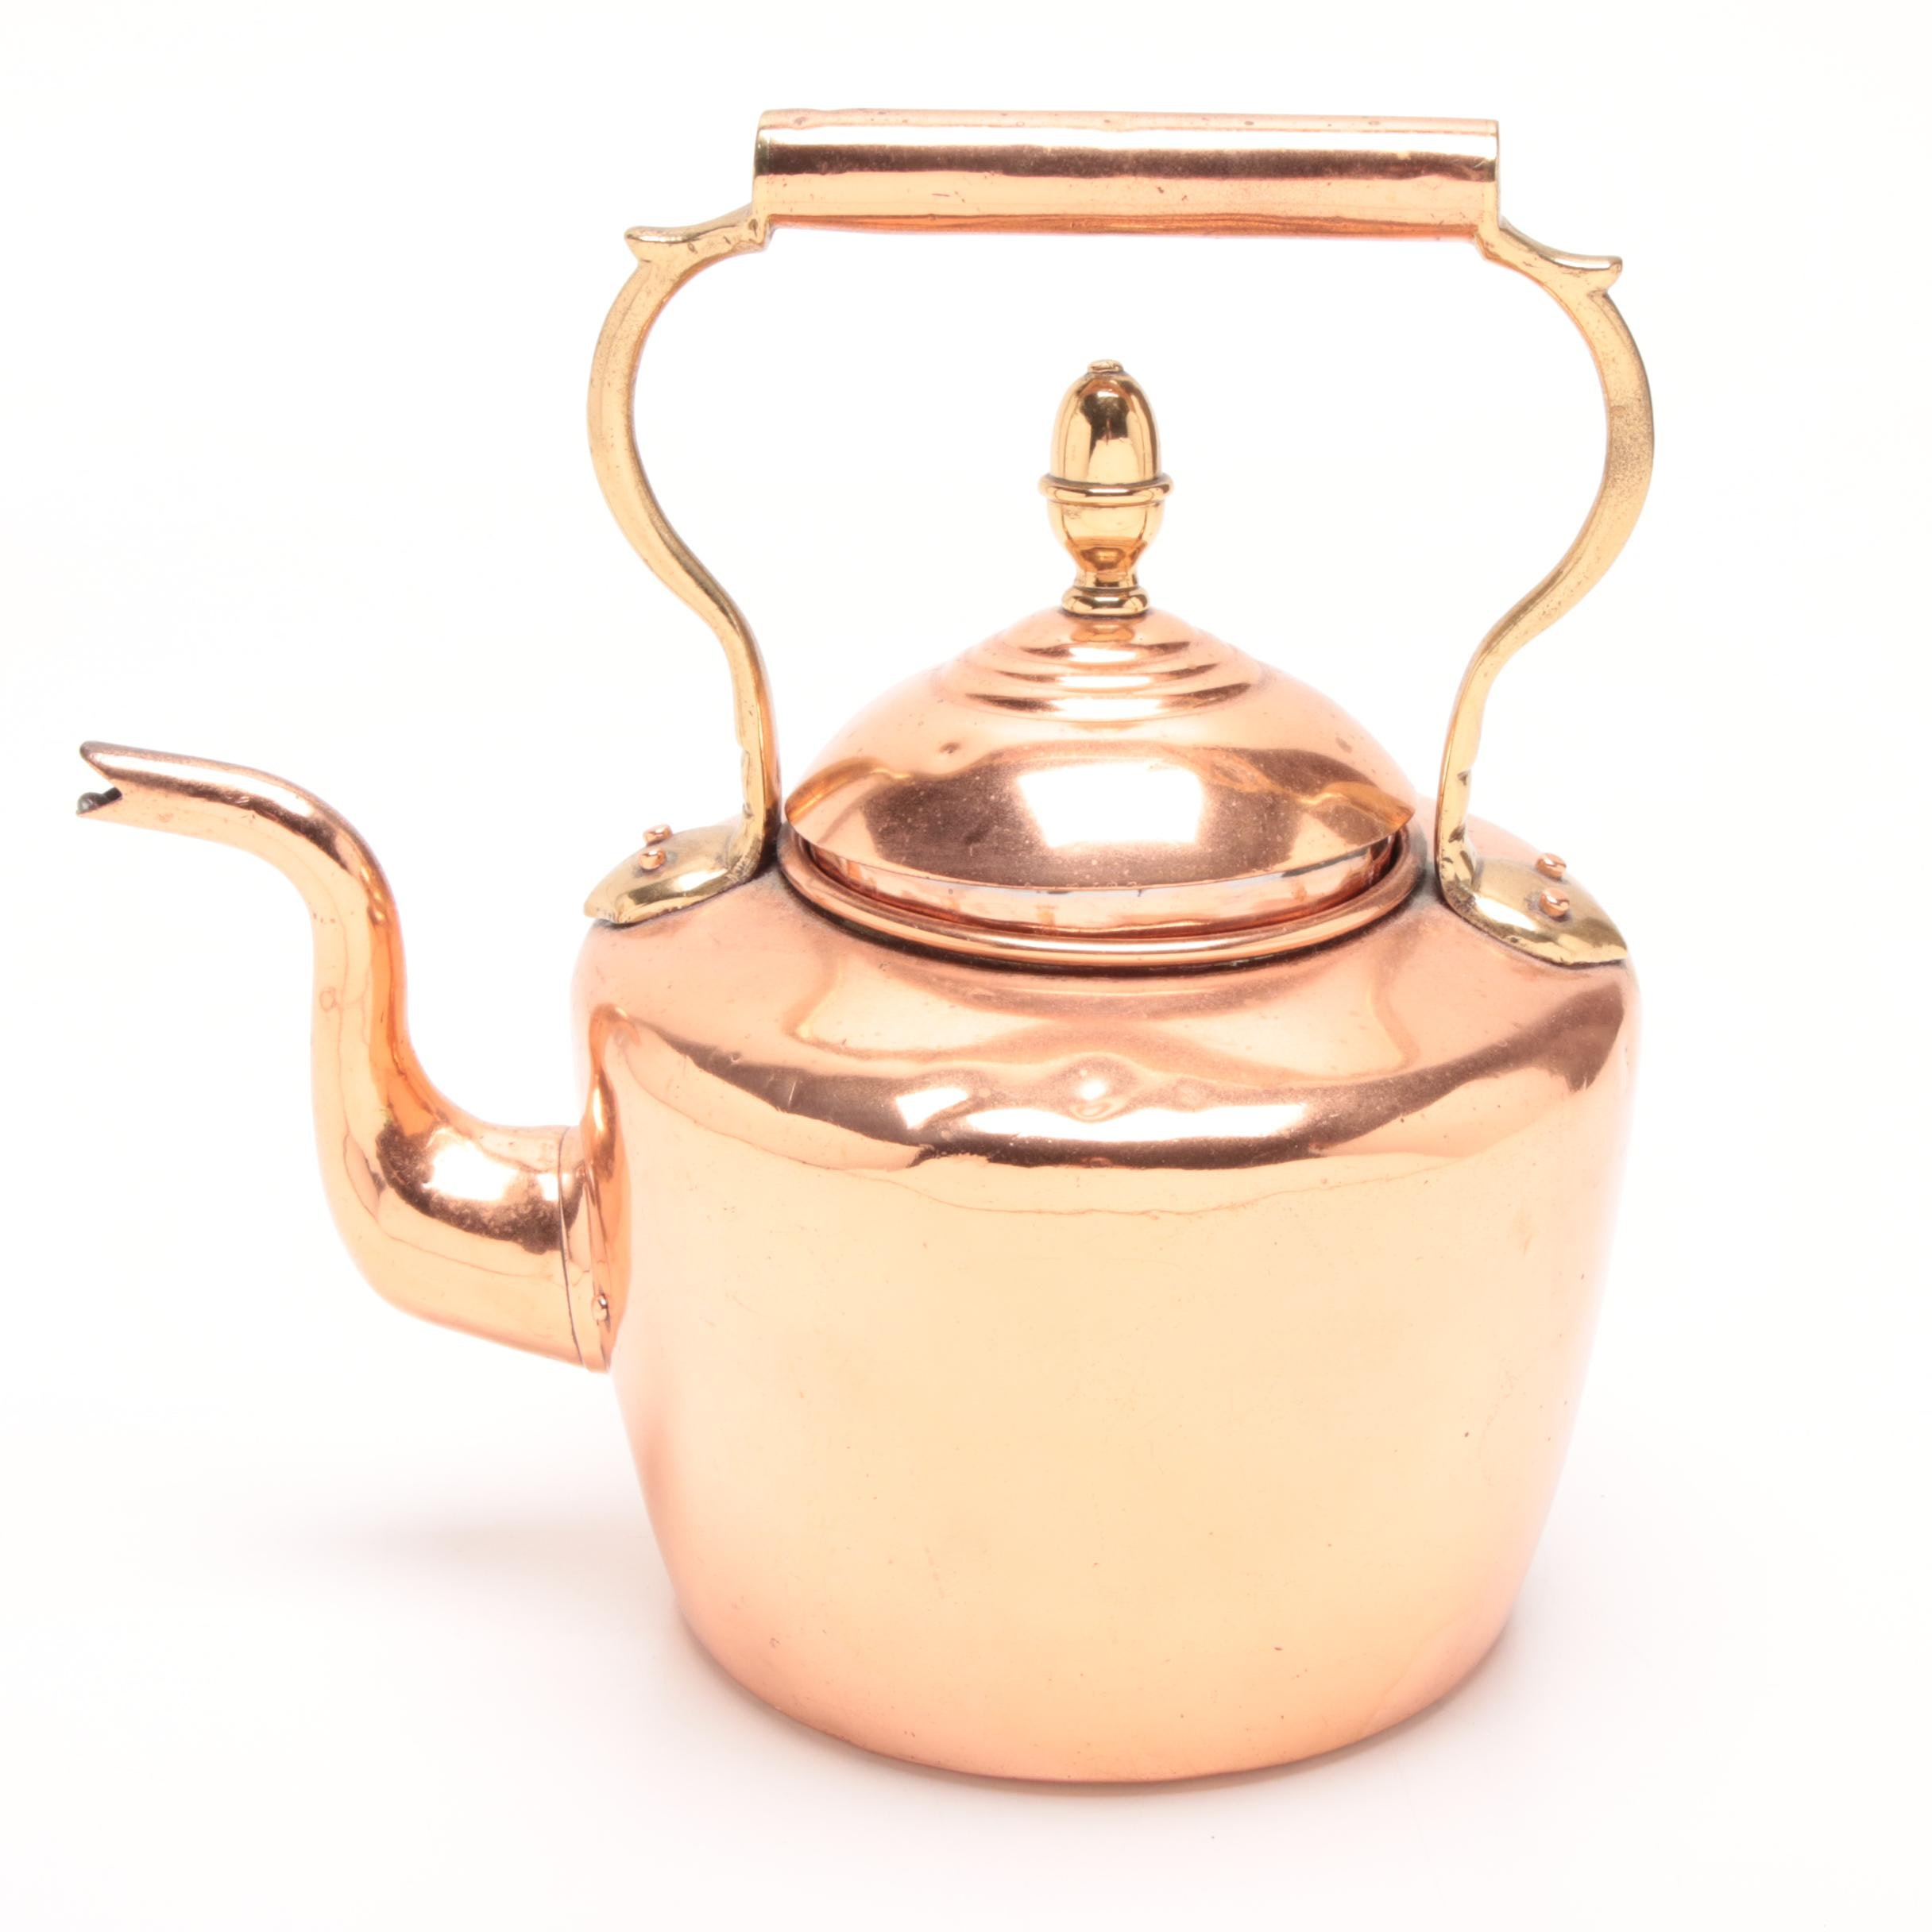 Early 1900s English William Soutter & Sons Copper & Brass Tea Kettle